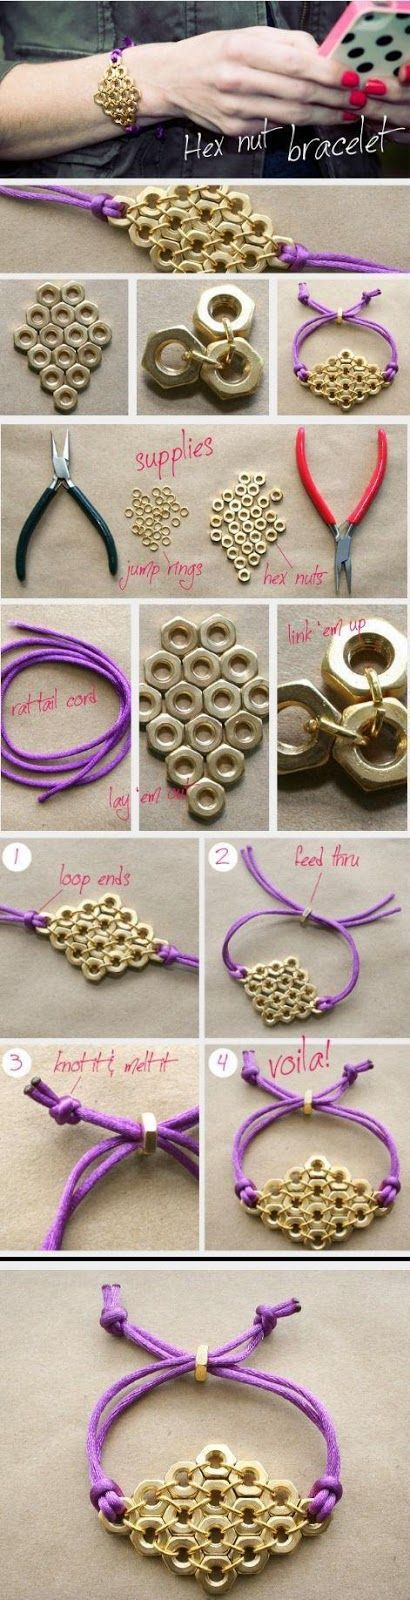 16 Best DIY Fashion Ideas Ever  Finally a jewelry design for the silver buttons I purchased from JHCollectibles annual factory sale 20 years ago!!